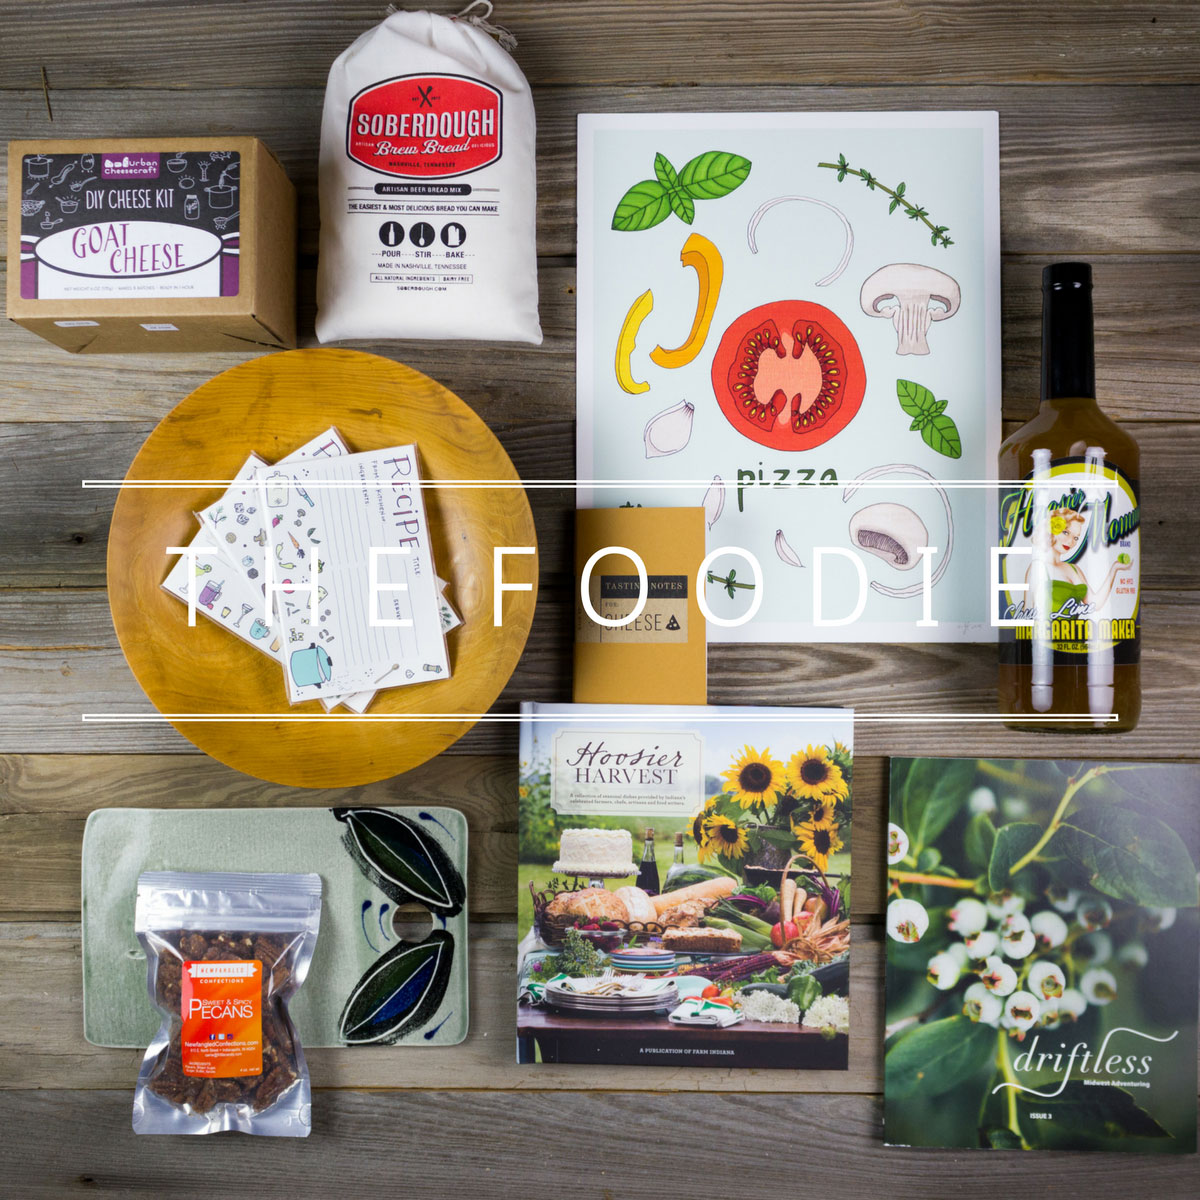 foodie, cook, kitchen, gifts, gourmet, book, food